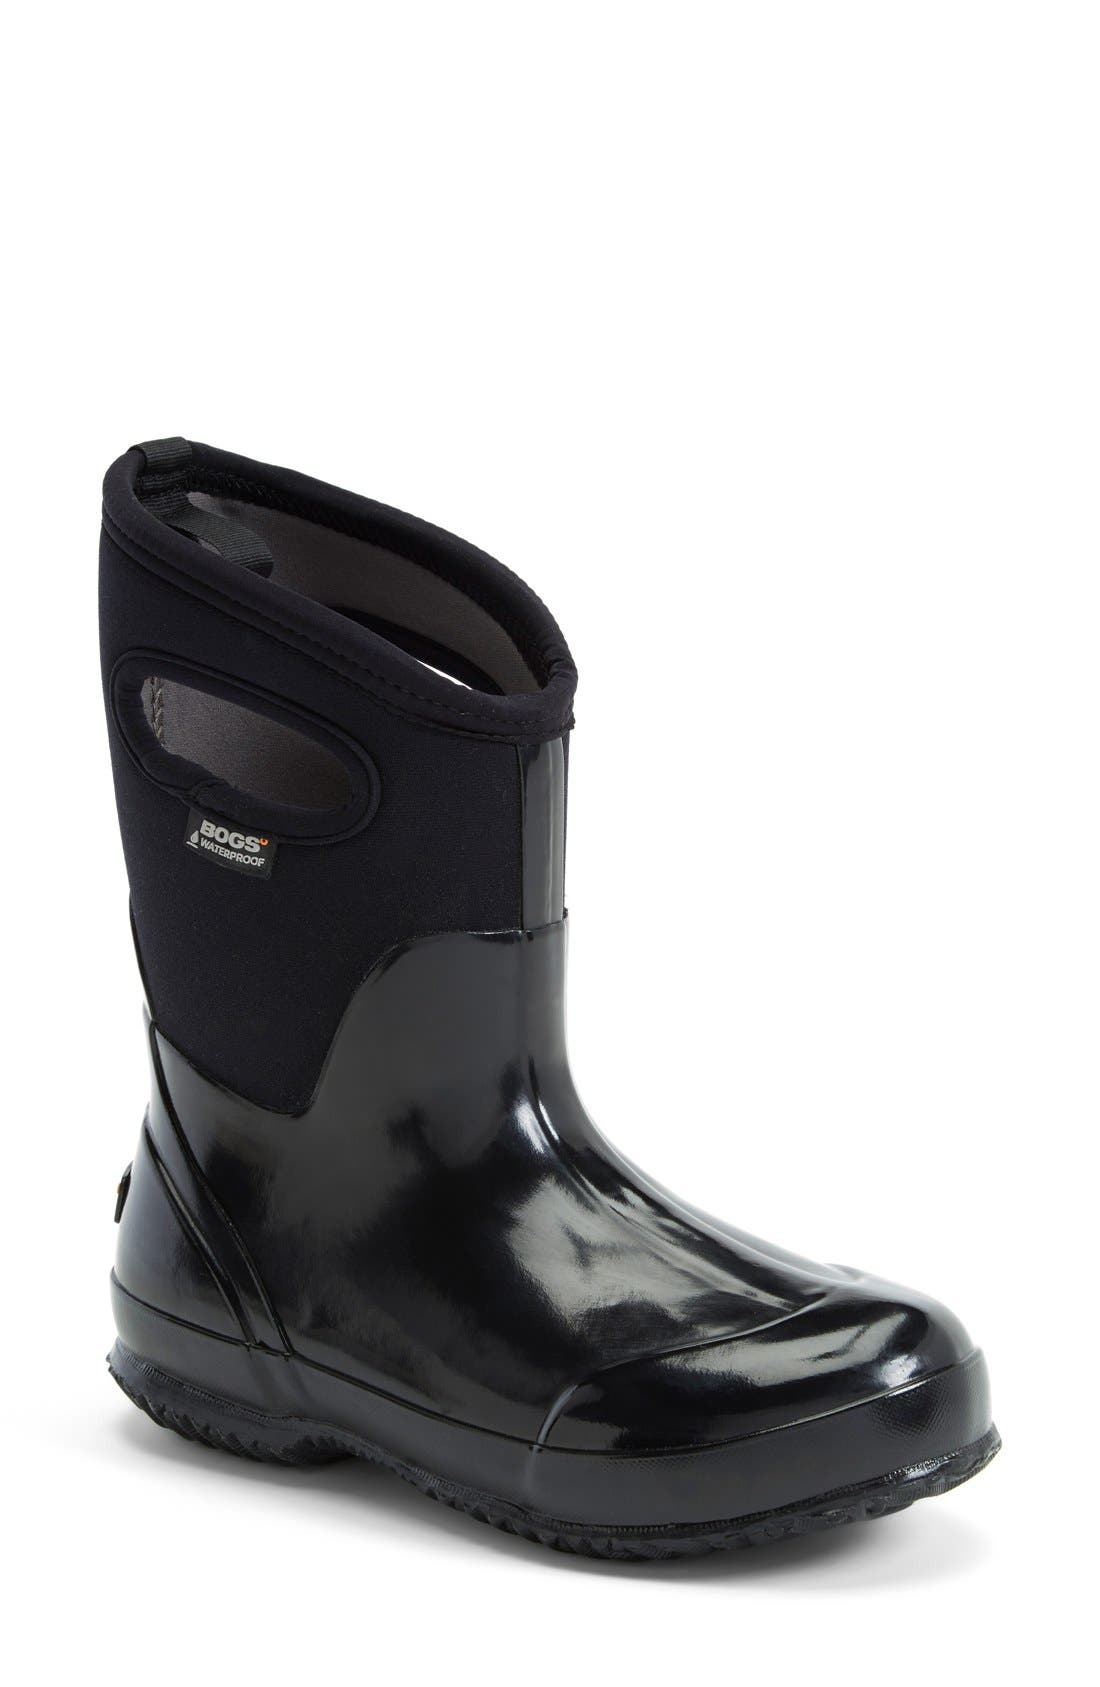 Bogs 'Classic' Mid High Waterproof Snow Boot with Cutout Handles (Women)